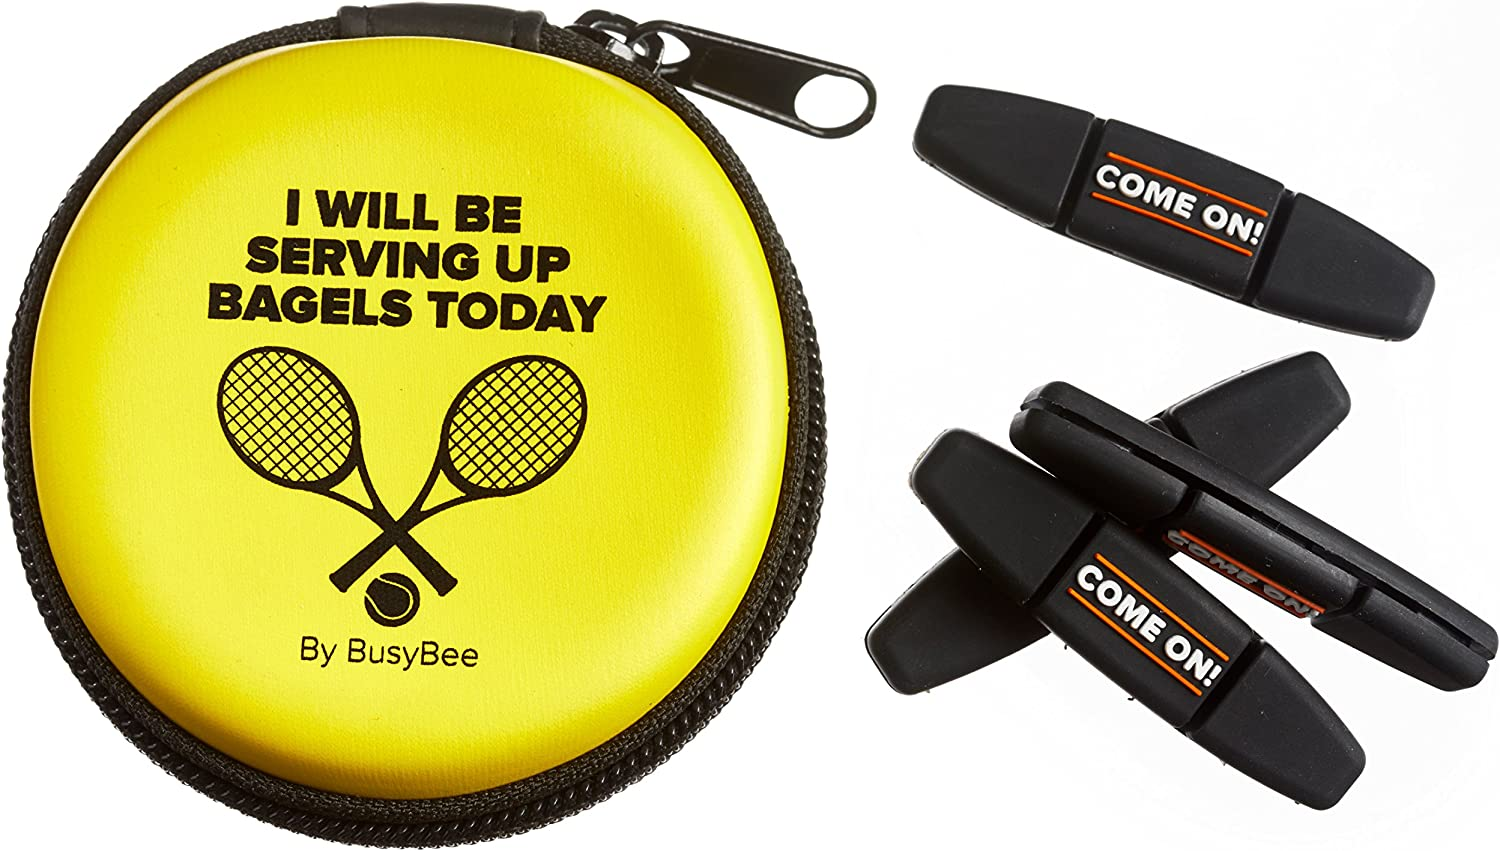 Tennis Vibration Dampener in Funny Zipper Gift Pack (Pack of 4). Best Shock Absorber for Your Racket and Strings